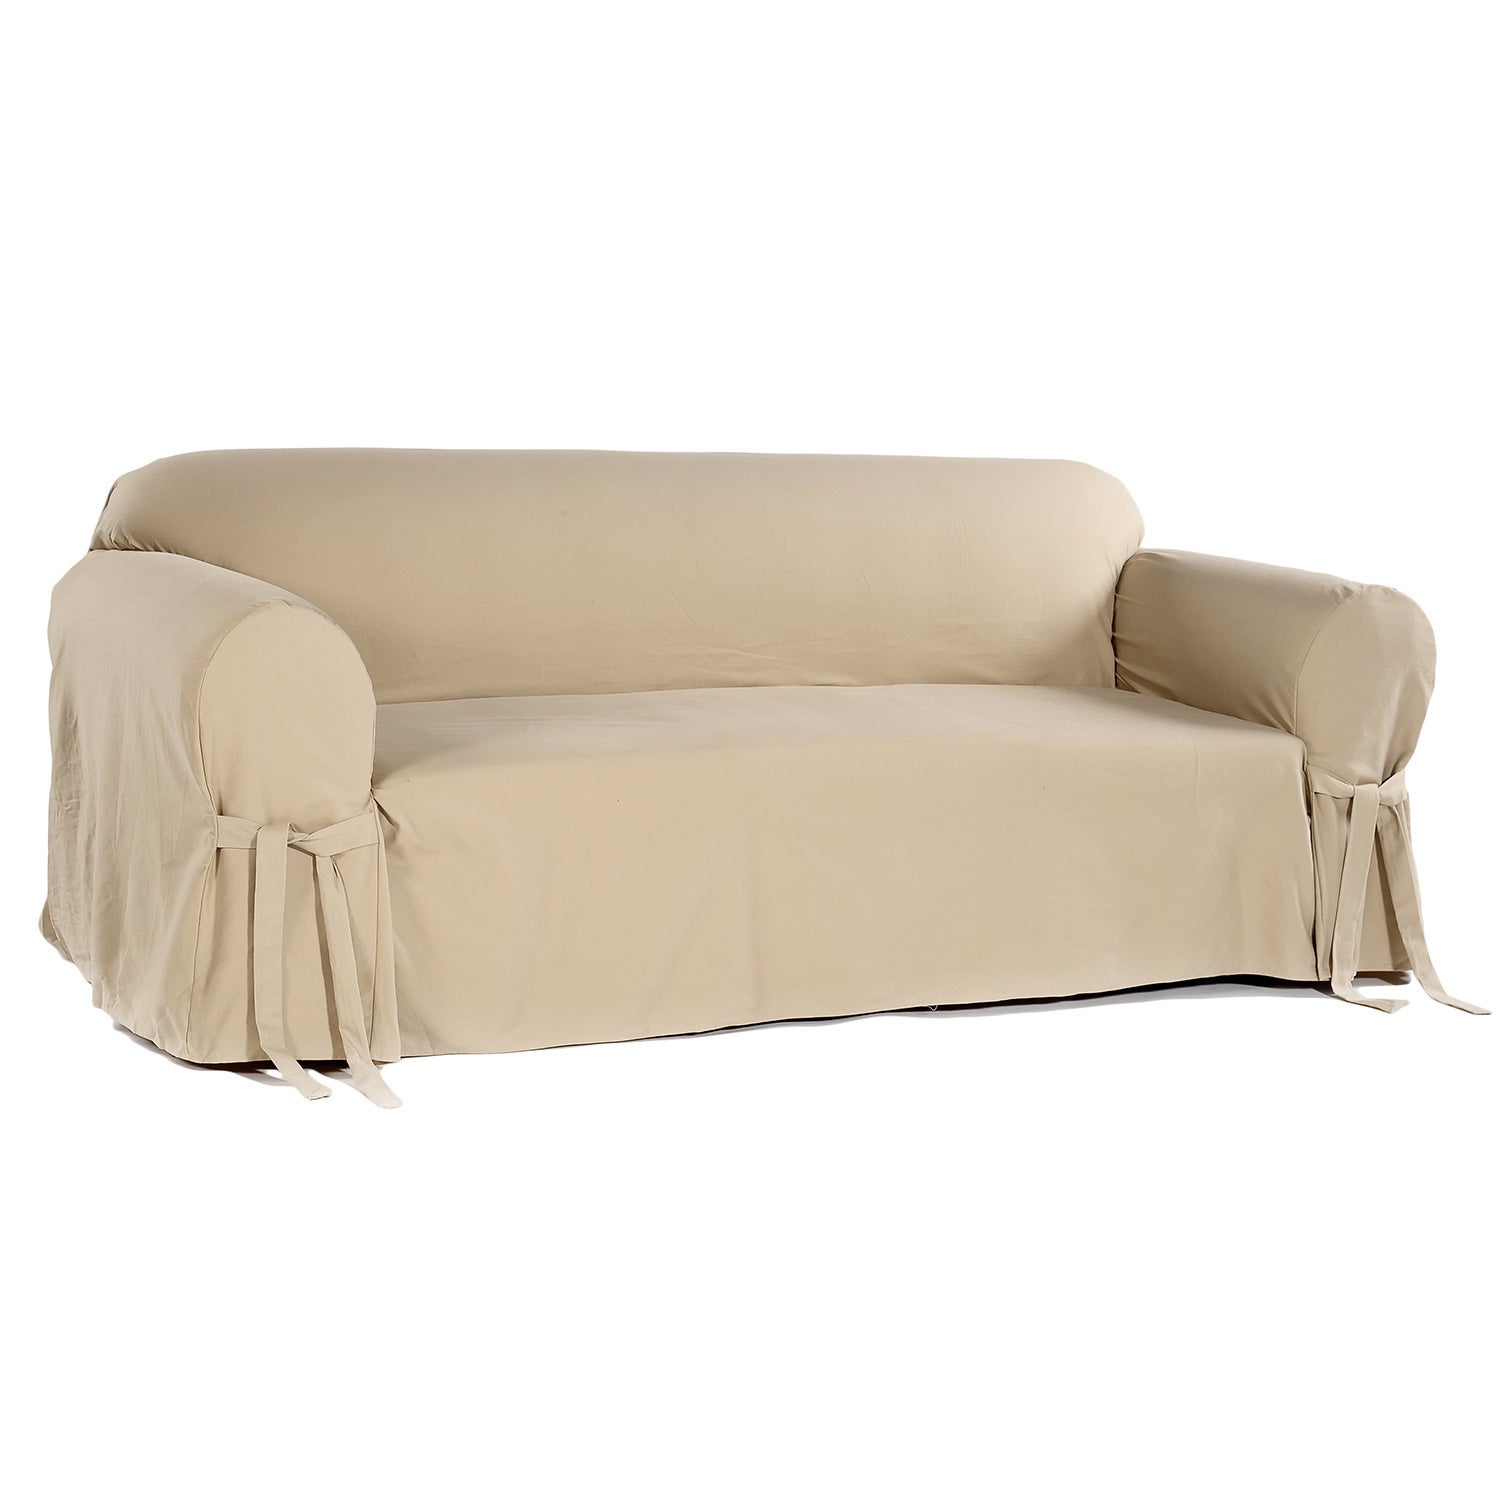 buy sofa couch slipcovers online at overstock com our best rh overstock com sofa recliner couch covers sofa bed couch covers